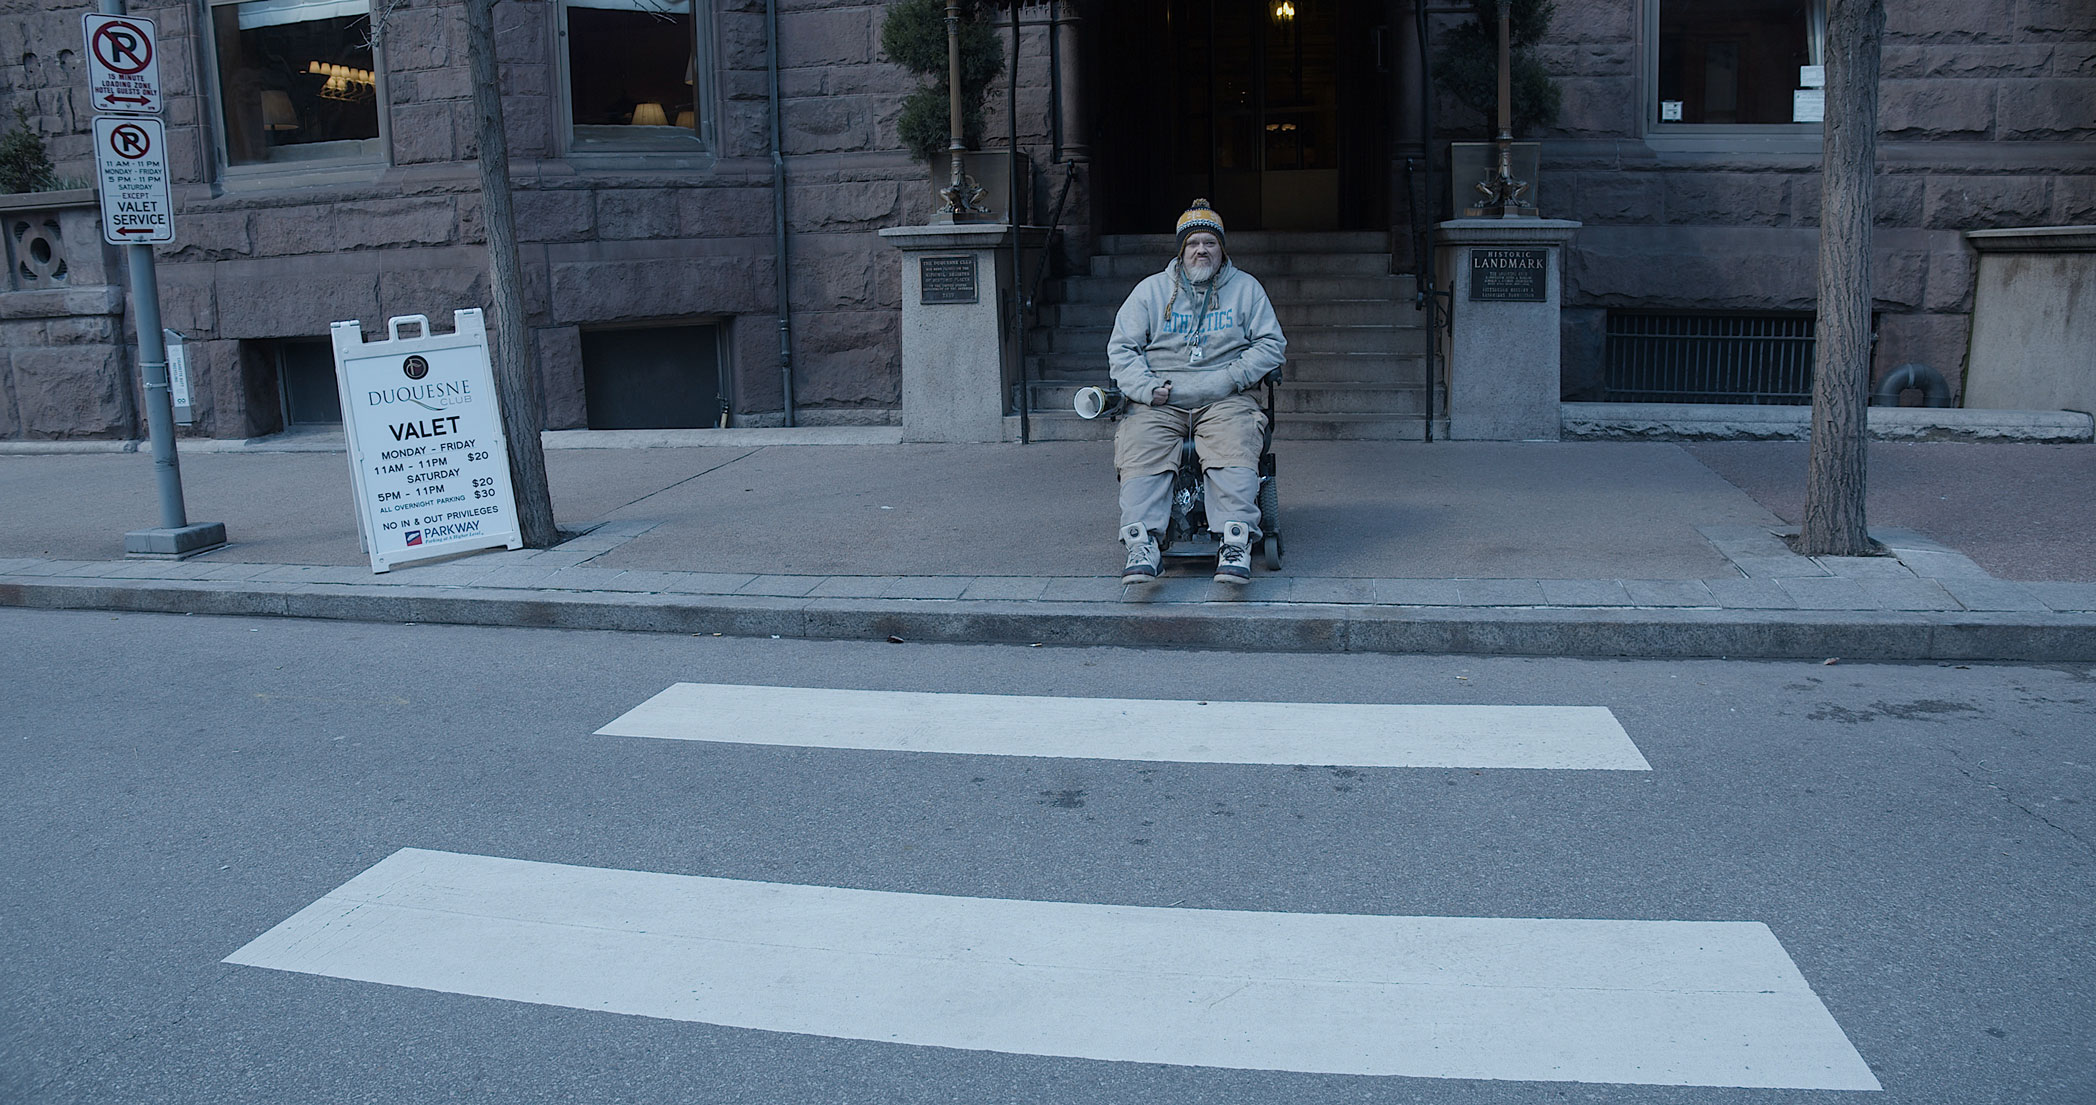 Zoomed out photograph of a man in a wheelchair on the sidewalk. He's waiting to cross at a crosswalk. The sidewalk below him has no curb cut.